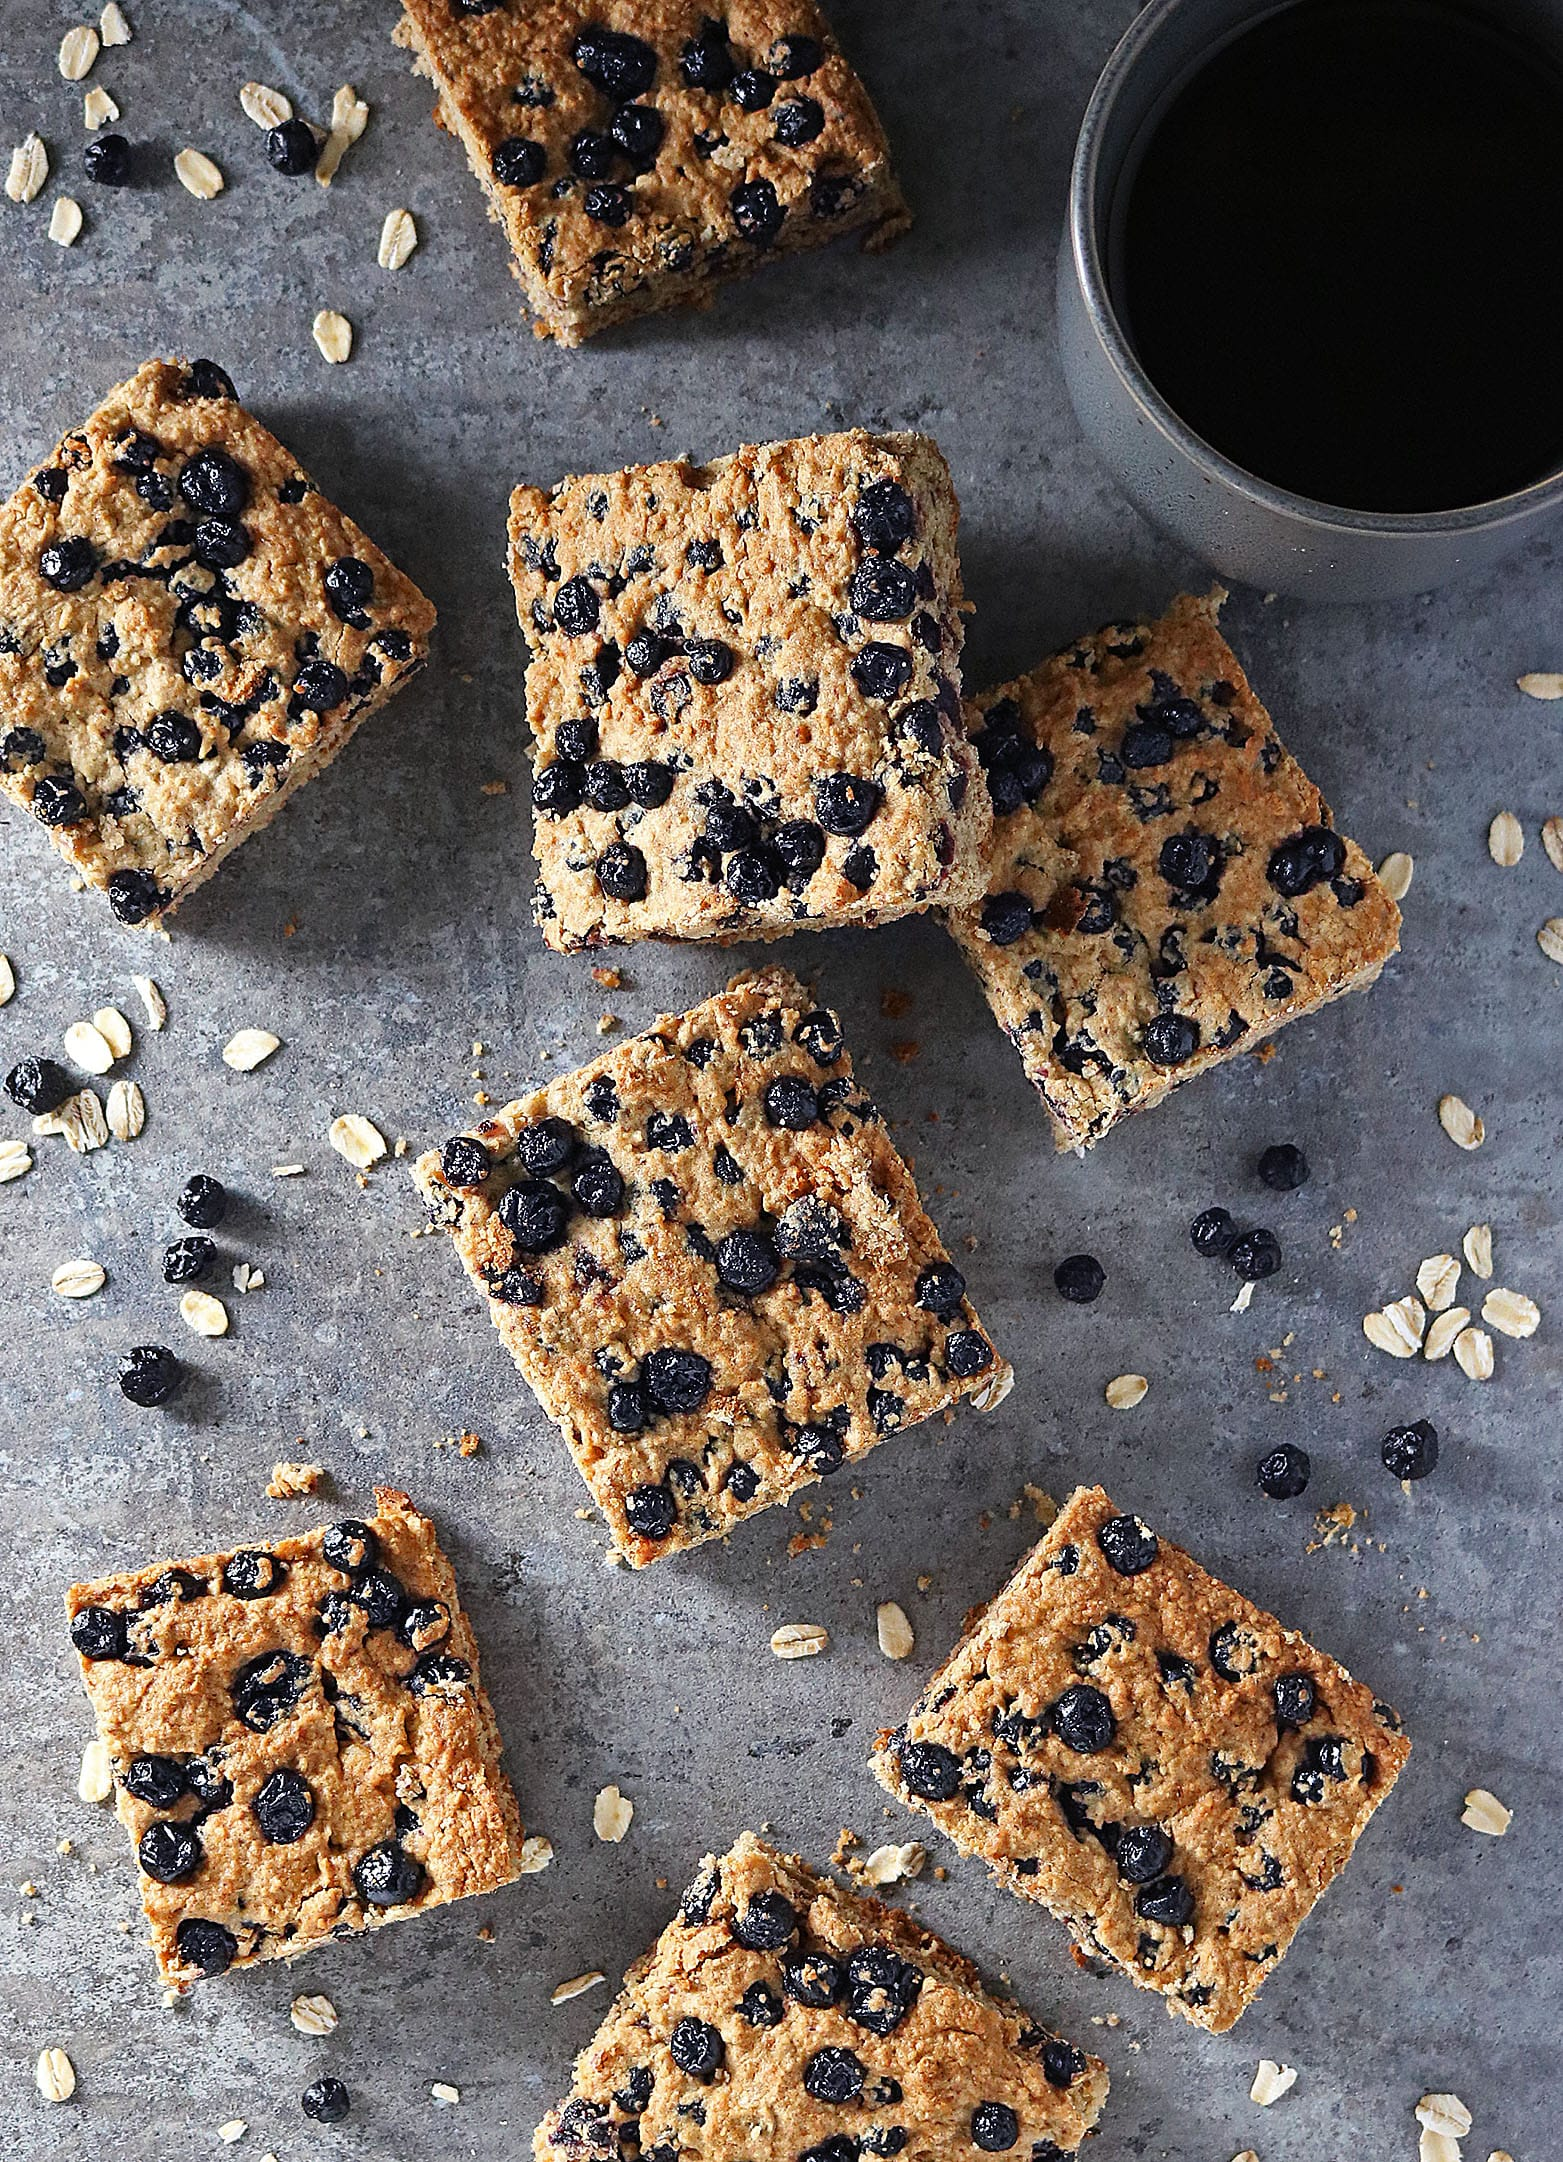 Blender Blueberry Bars and 16 other refined sugar free snacks recipes. Perfect for school snacks, post work out snacks, or whenever you need an easy snack! Get the recipe round-up on naturallysweetkitchen.com #schoolsnacks #healthysnacks #naturallysweetkitchen #preworkoutsnacks #refinedsugarfree